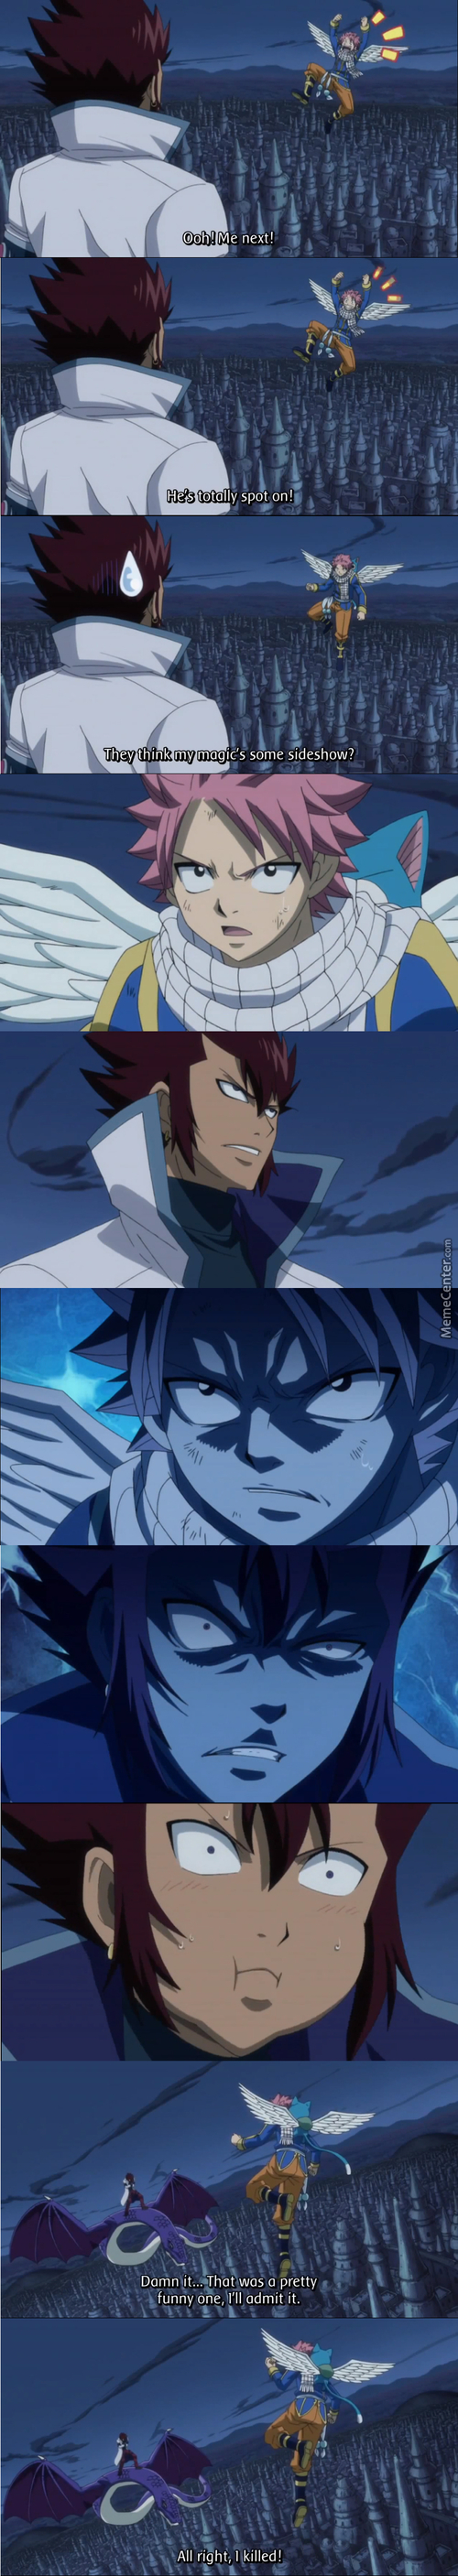 Many Years Have Passed And We Still Haven't Heard The Joke...(Contex: Blackhaired Guy, Cobra, Can Hear People's Thoughts) -Fairy Tail